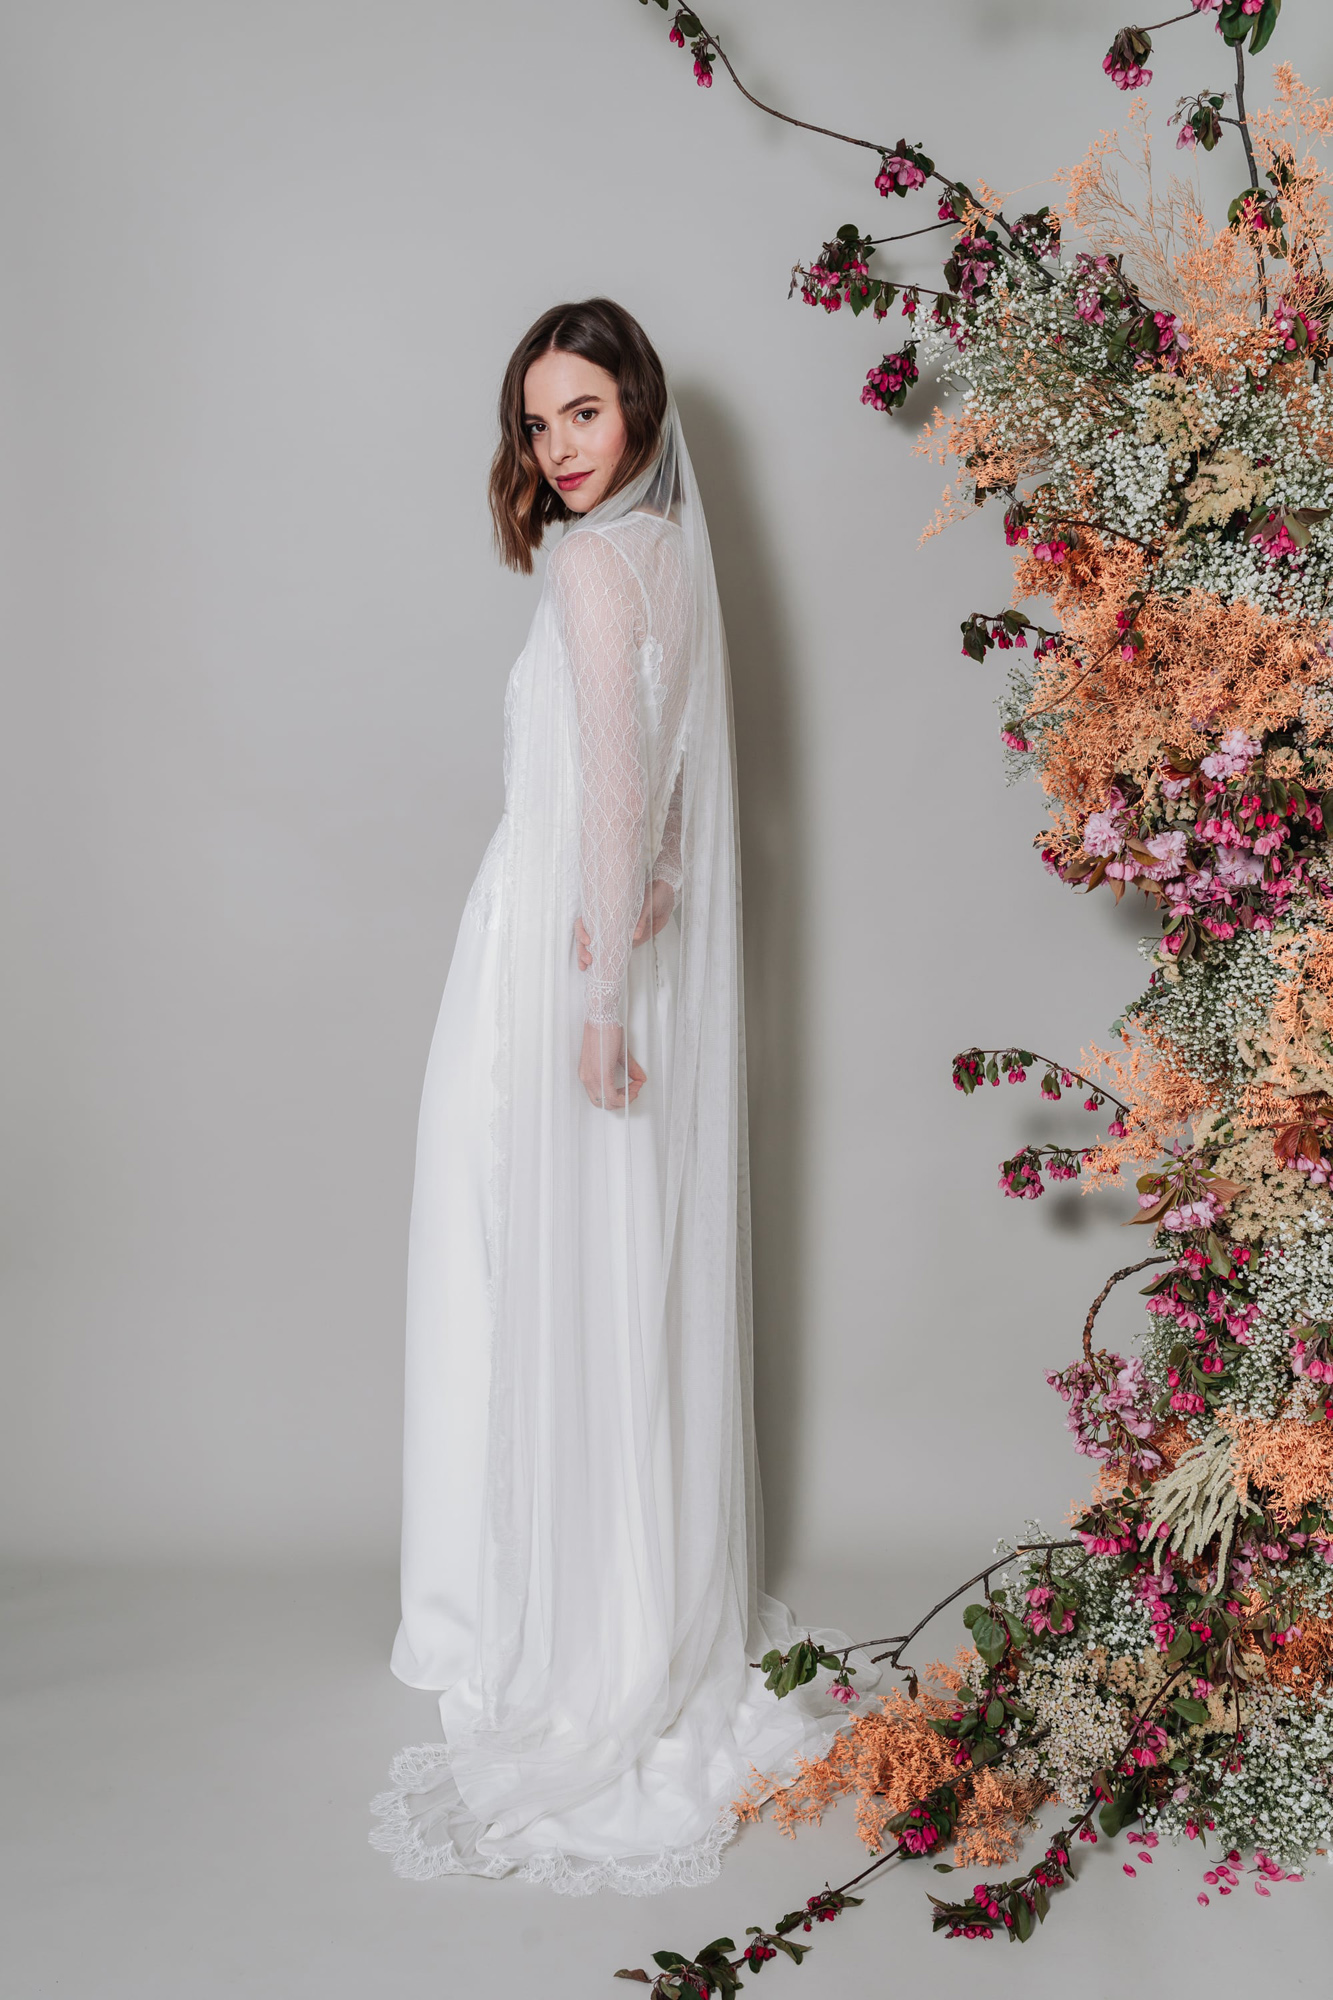 Kate-Beaumont-Sheffield-Geranium-Applique-Lace-Silk-Modern-Minimal-Long-Sleeved-Wedding-Gown-17.jpg